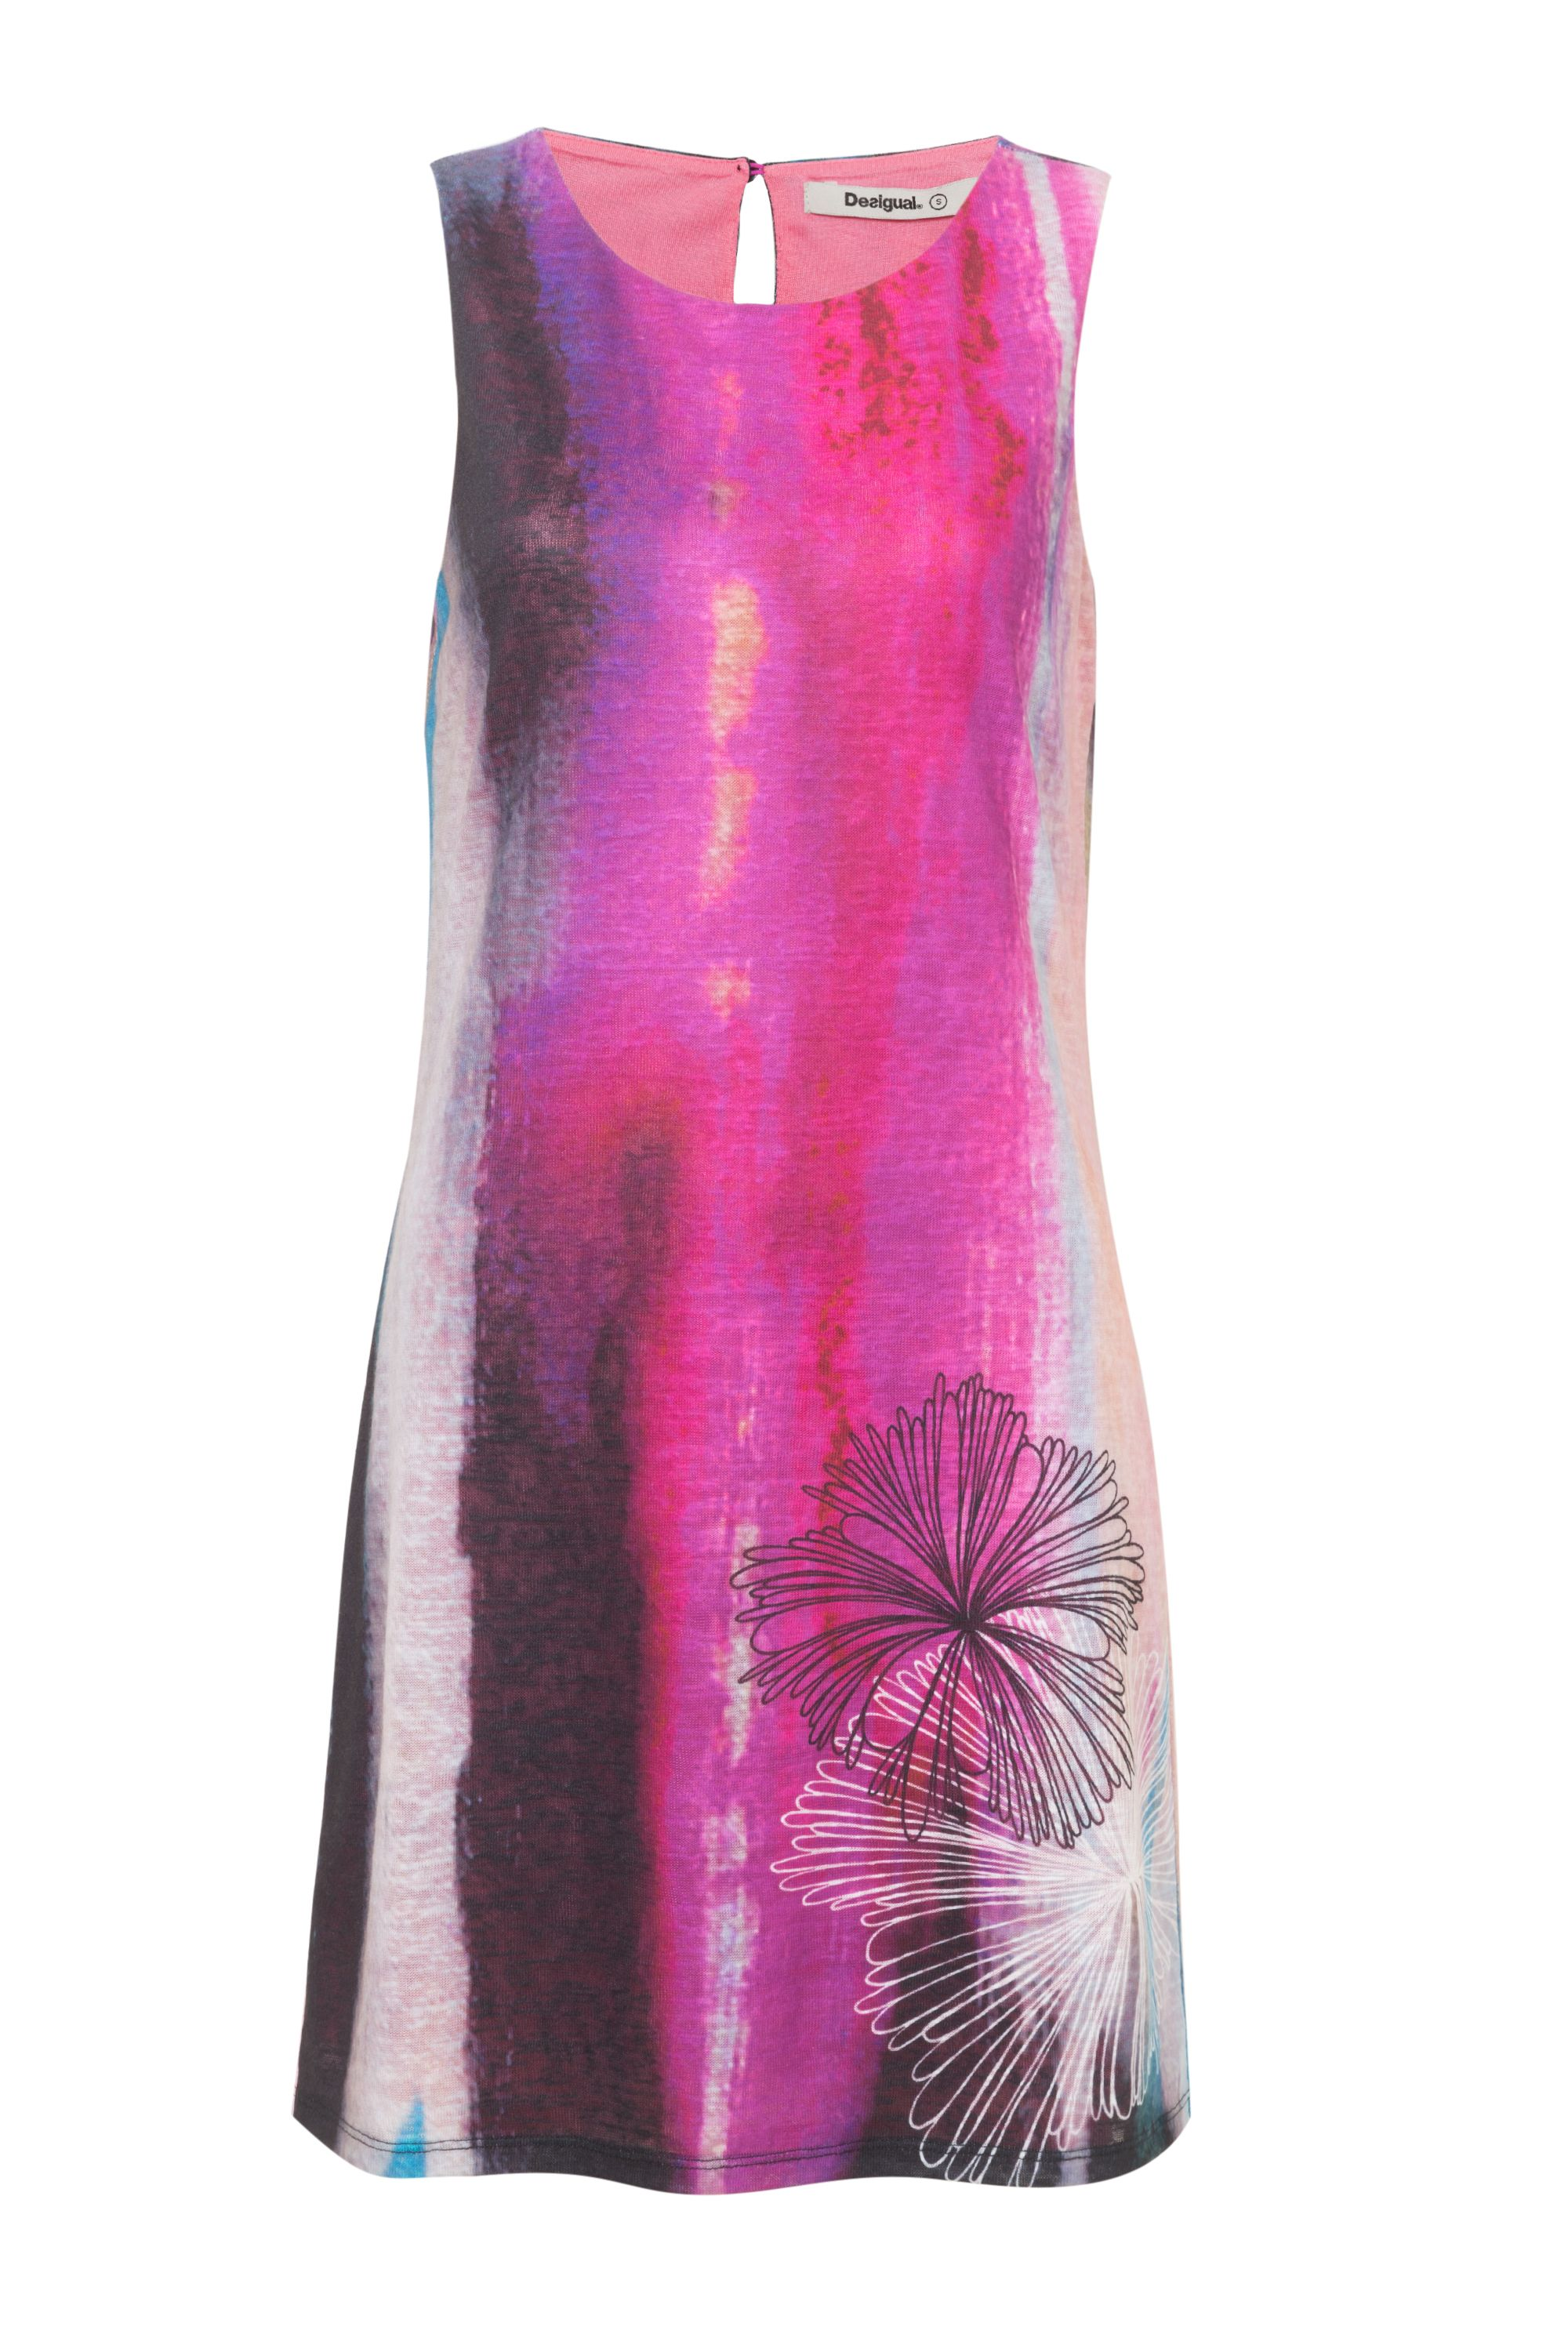 Desigual Elodie Dress, Red